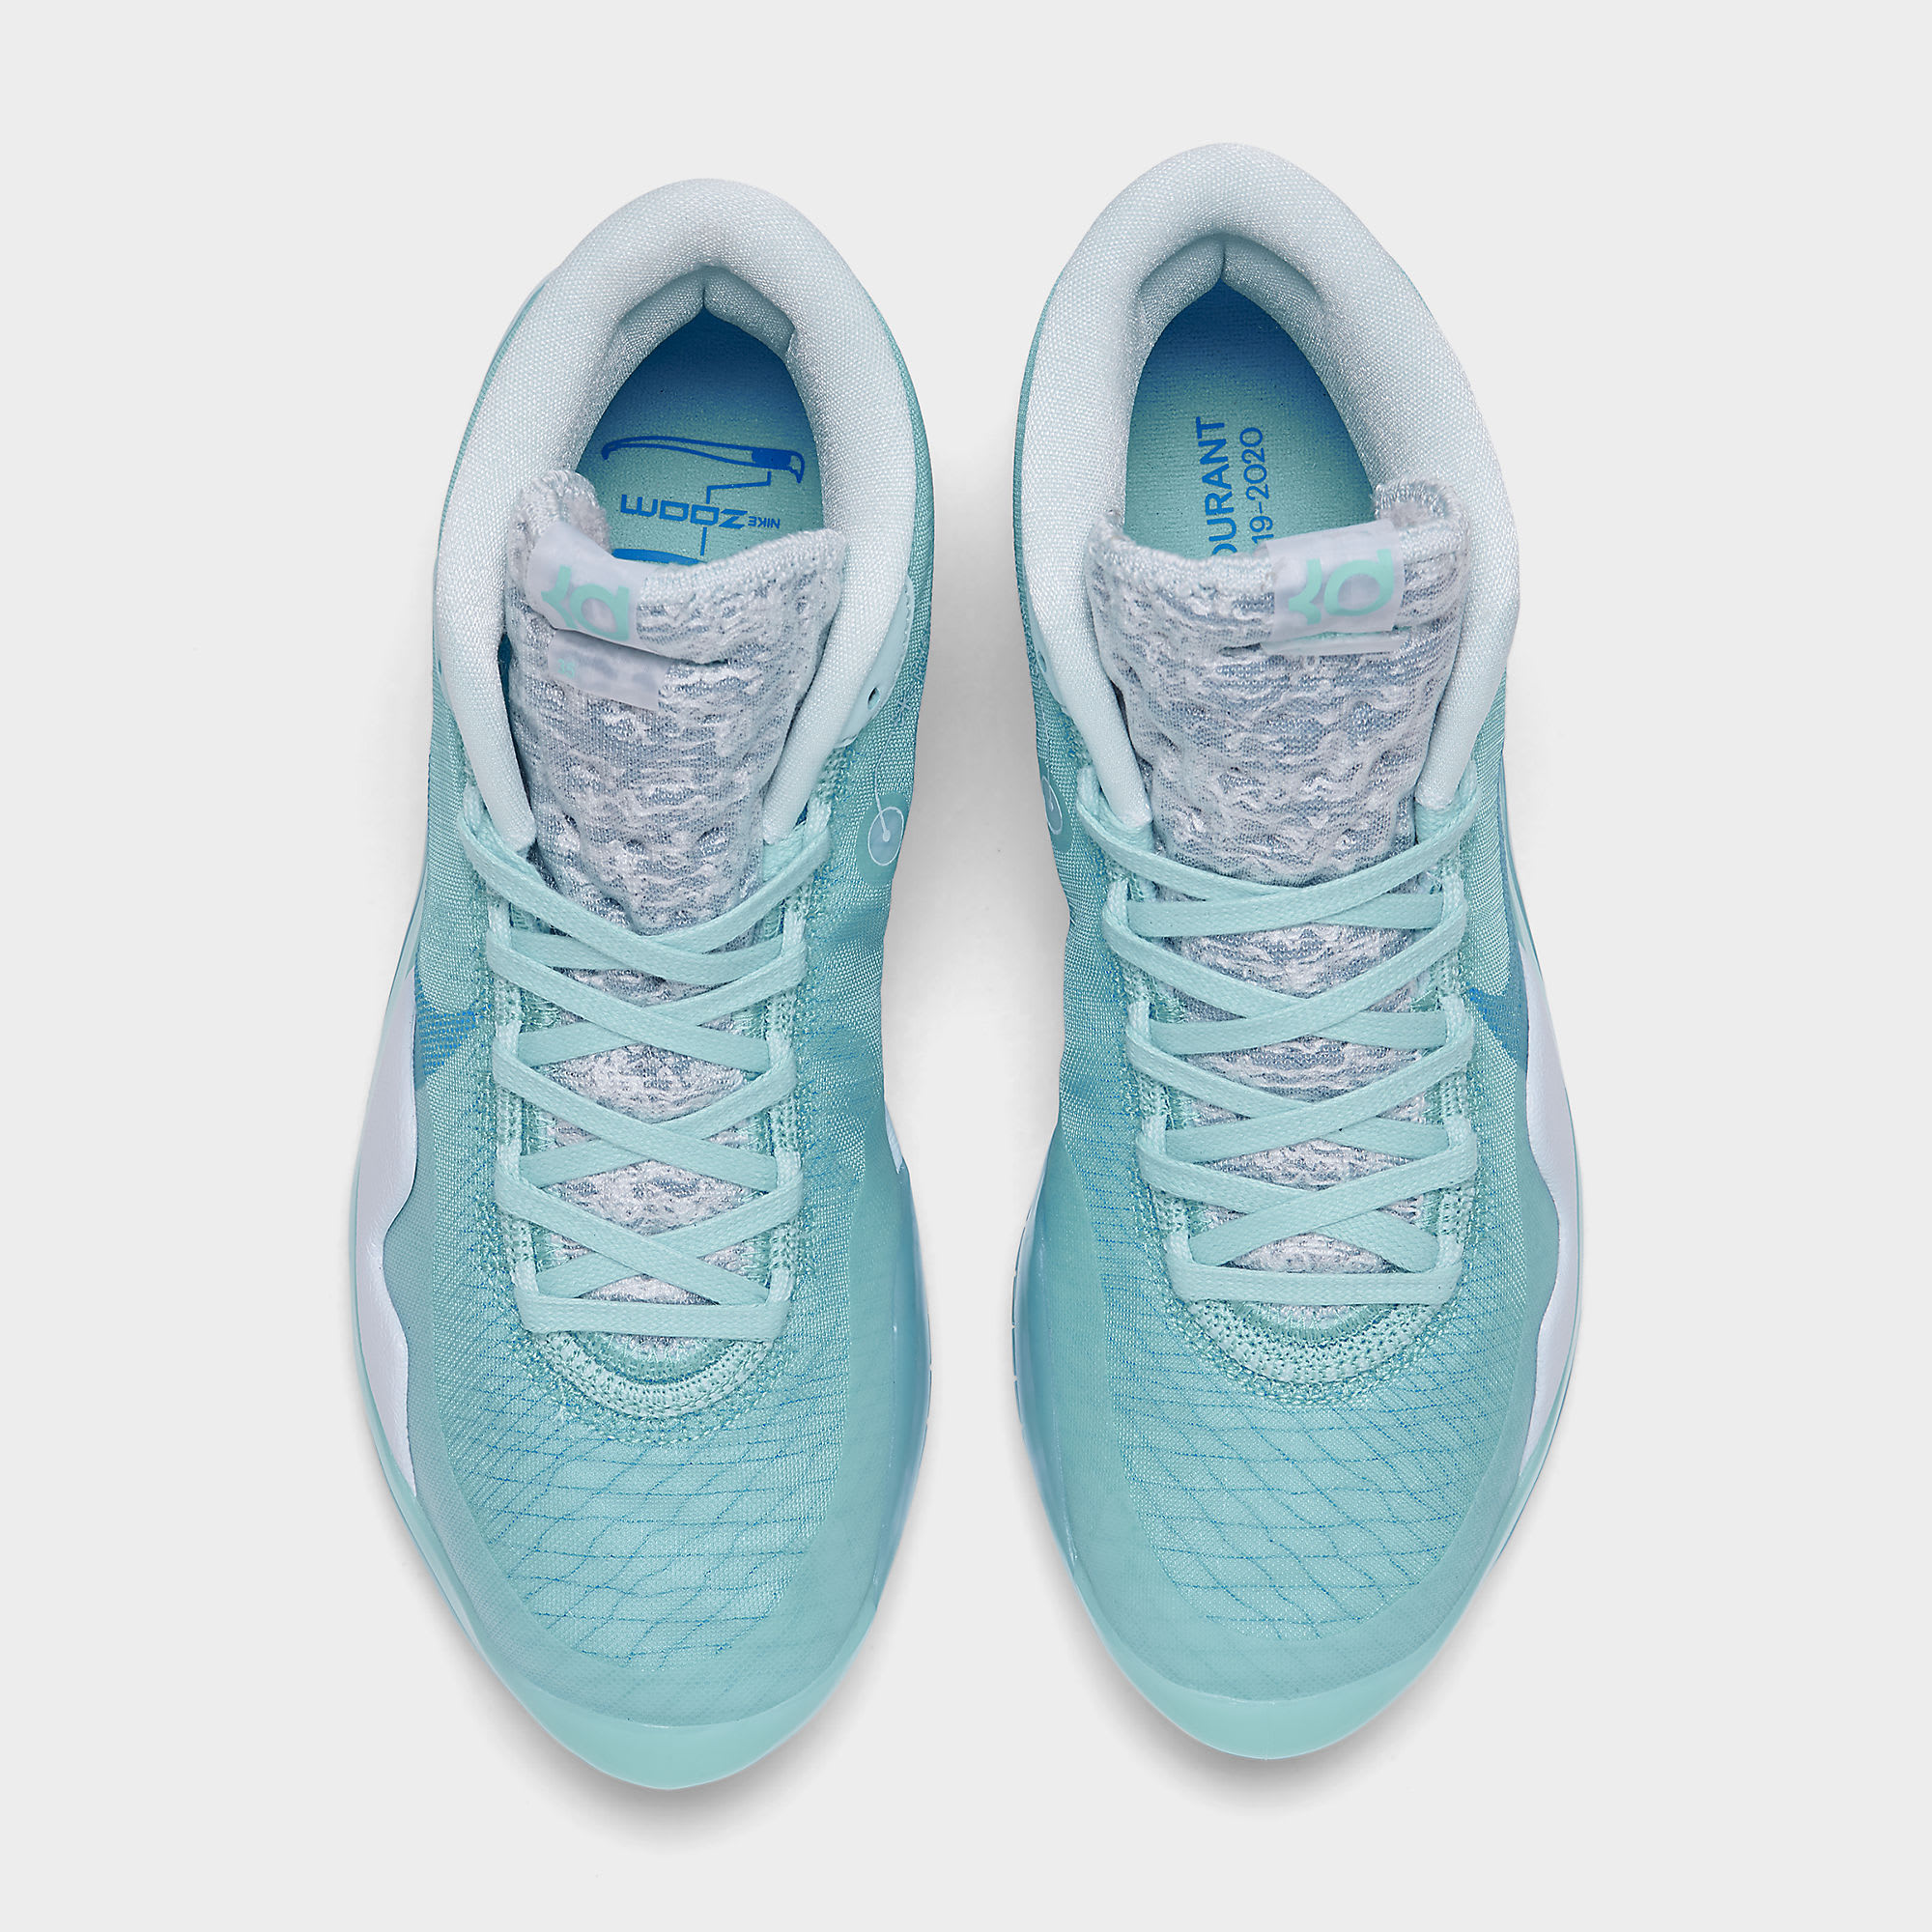 Nike KD 12 Blue Gaze Release Date AR4229-400 Top